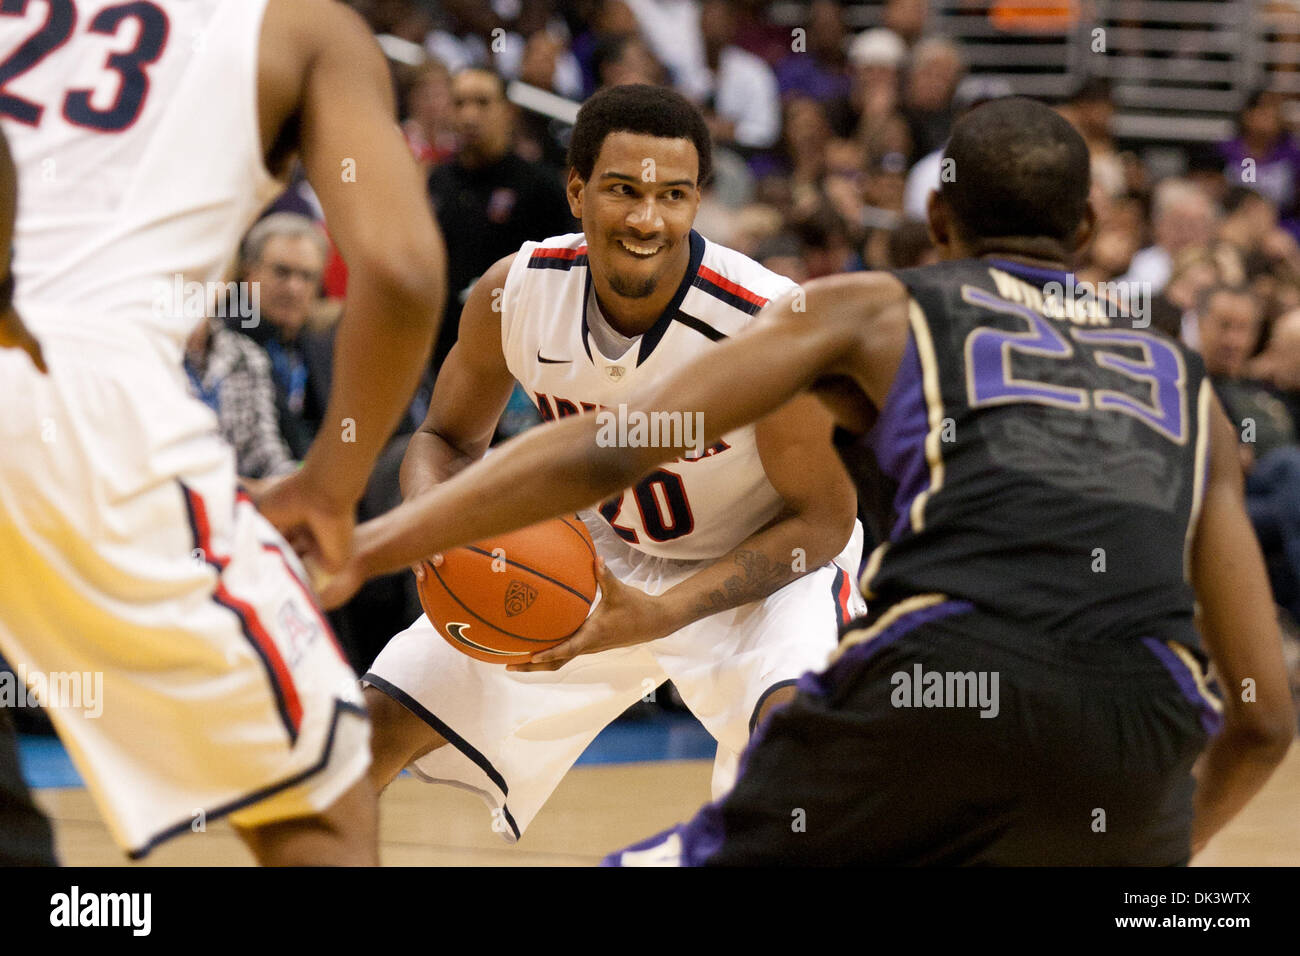 bbb494fc456 12, 2011 - Los Angeles, California, U.S - Arizona Wildcats guard Jordin  Mayes #20 in action during the NCAA Pacific Life Pac-10 Tournament  basketball ...